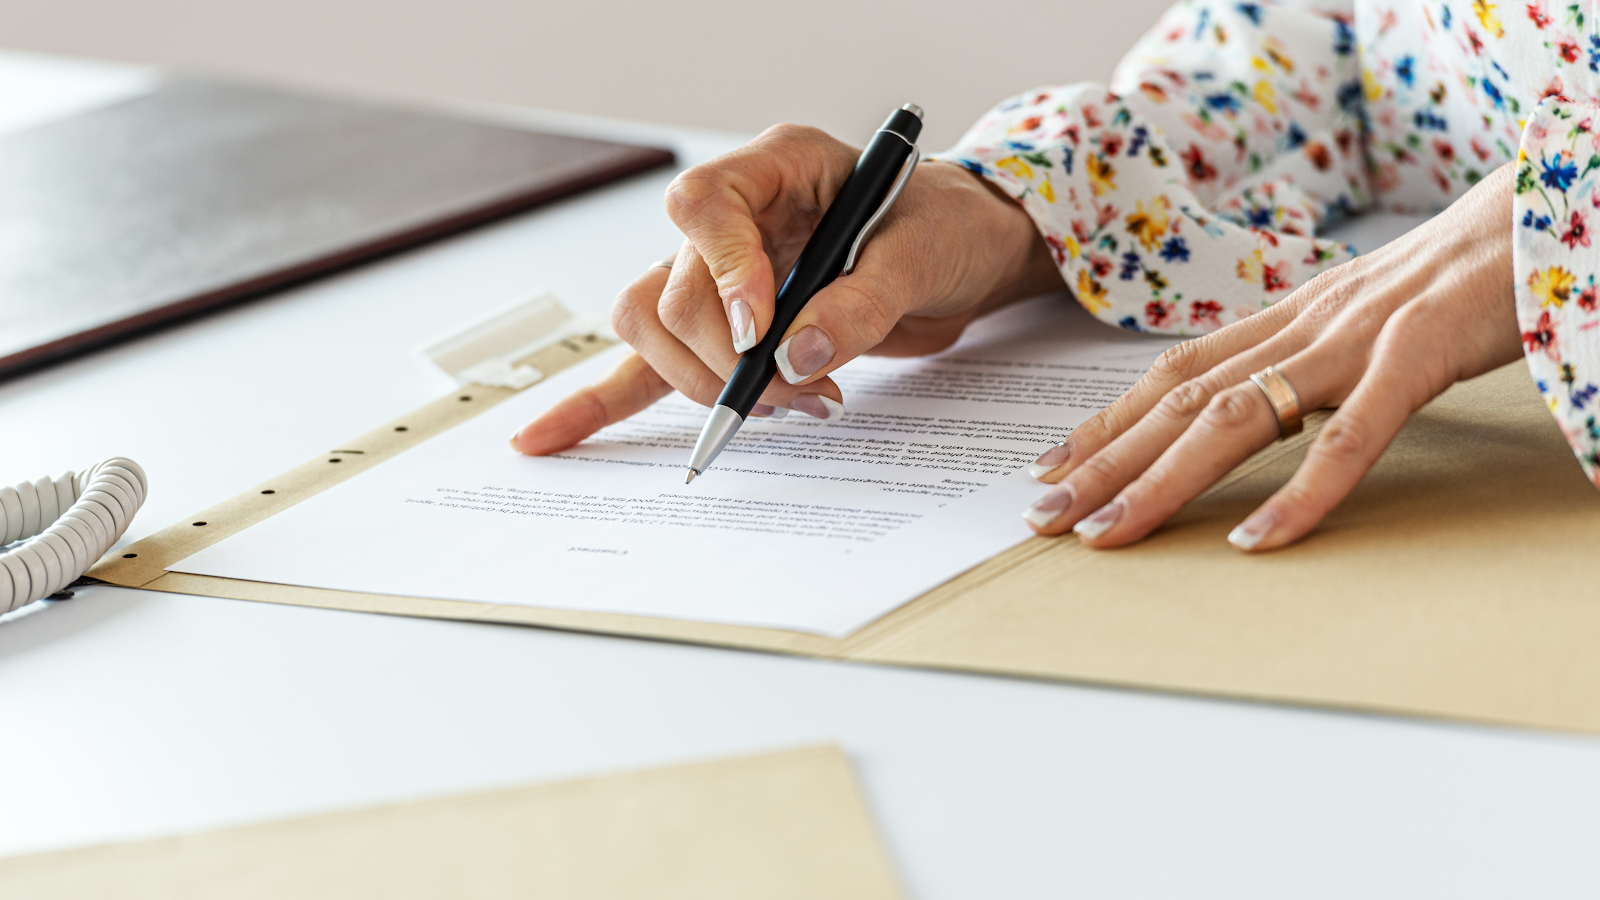 woman proofreading a document